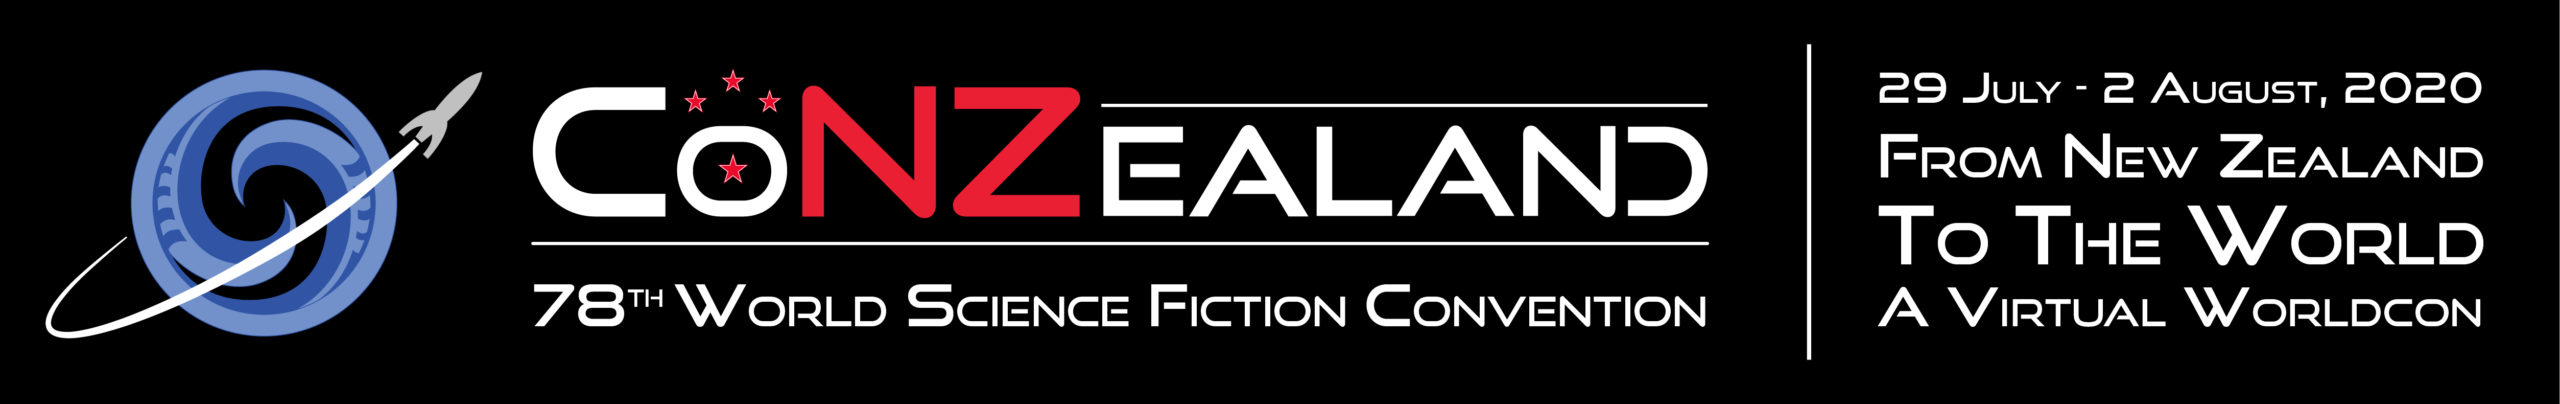 CoNZealand - A Virtual Worldcon